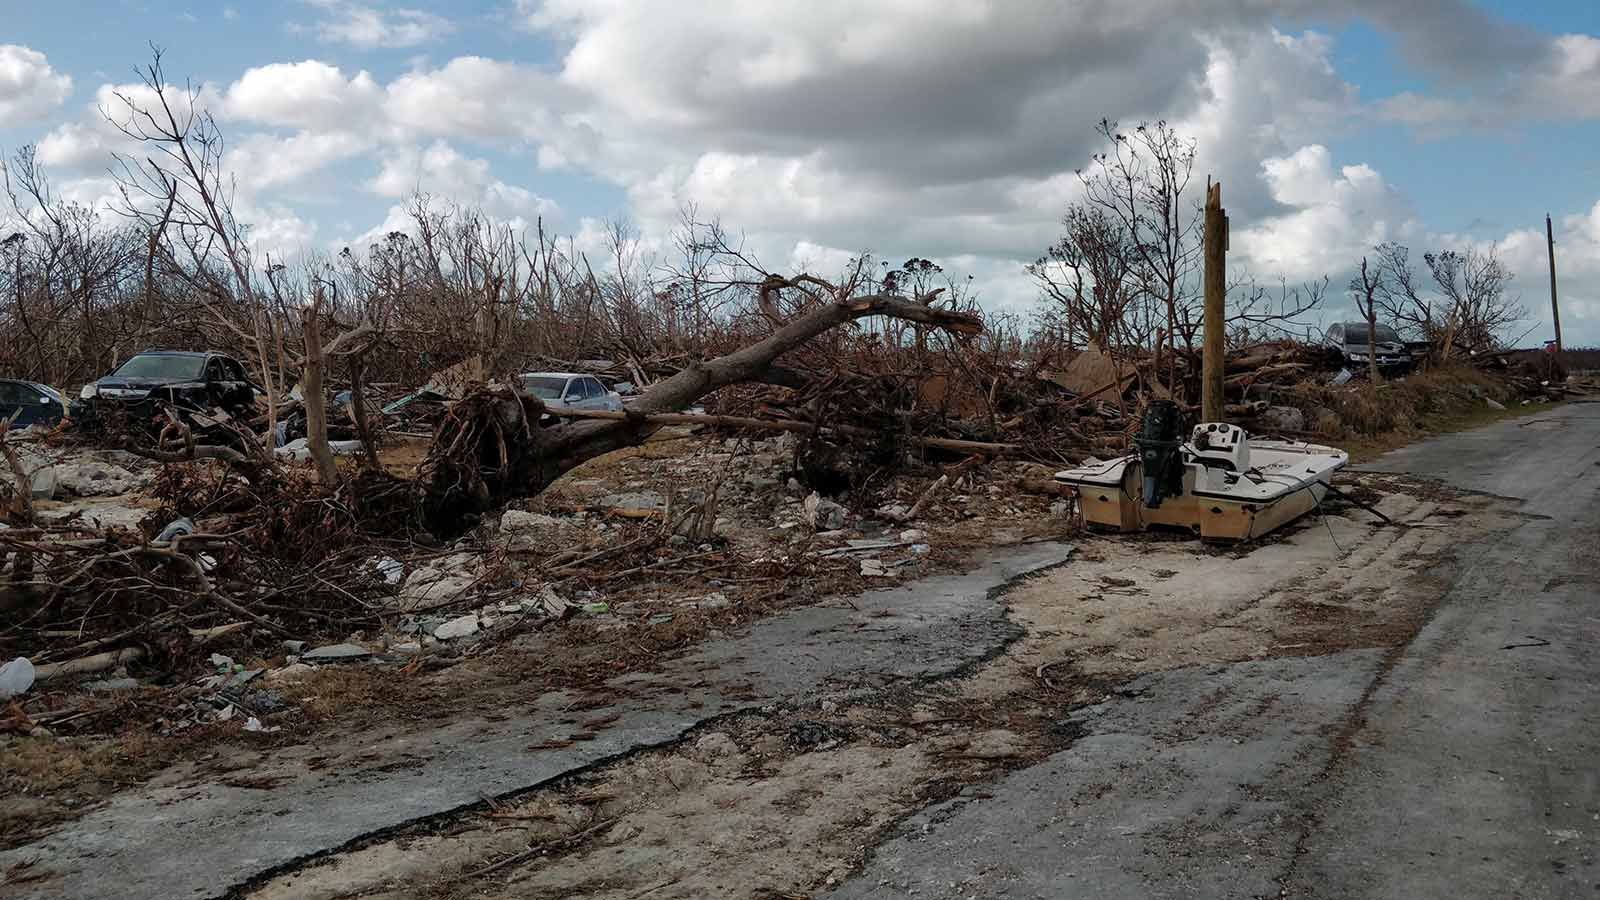 Damage-to-cars,-boats-and-the-road-after-Hurricane-Dorian